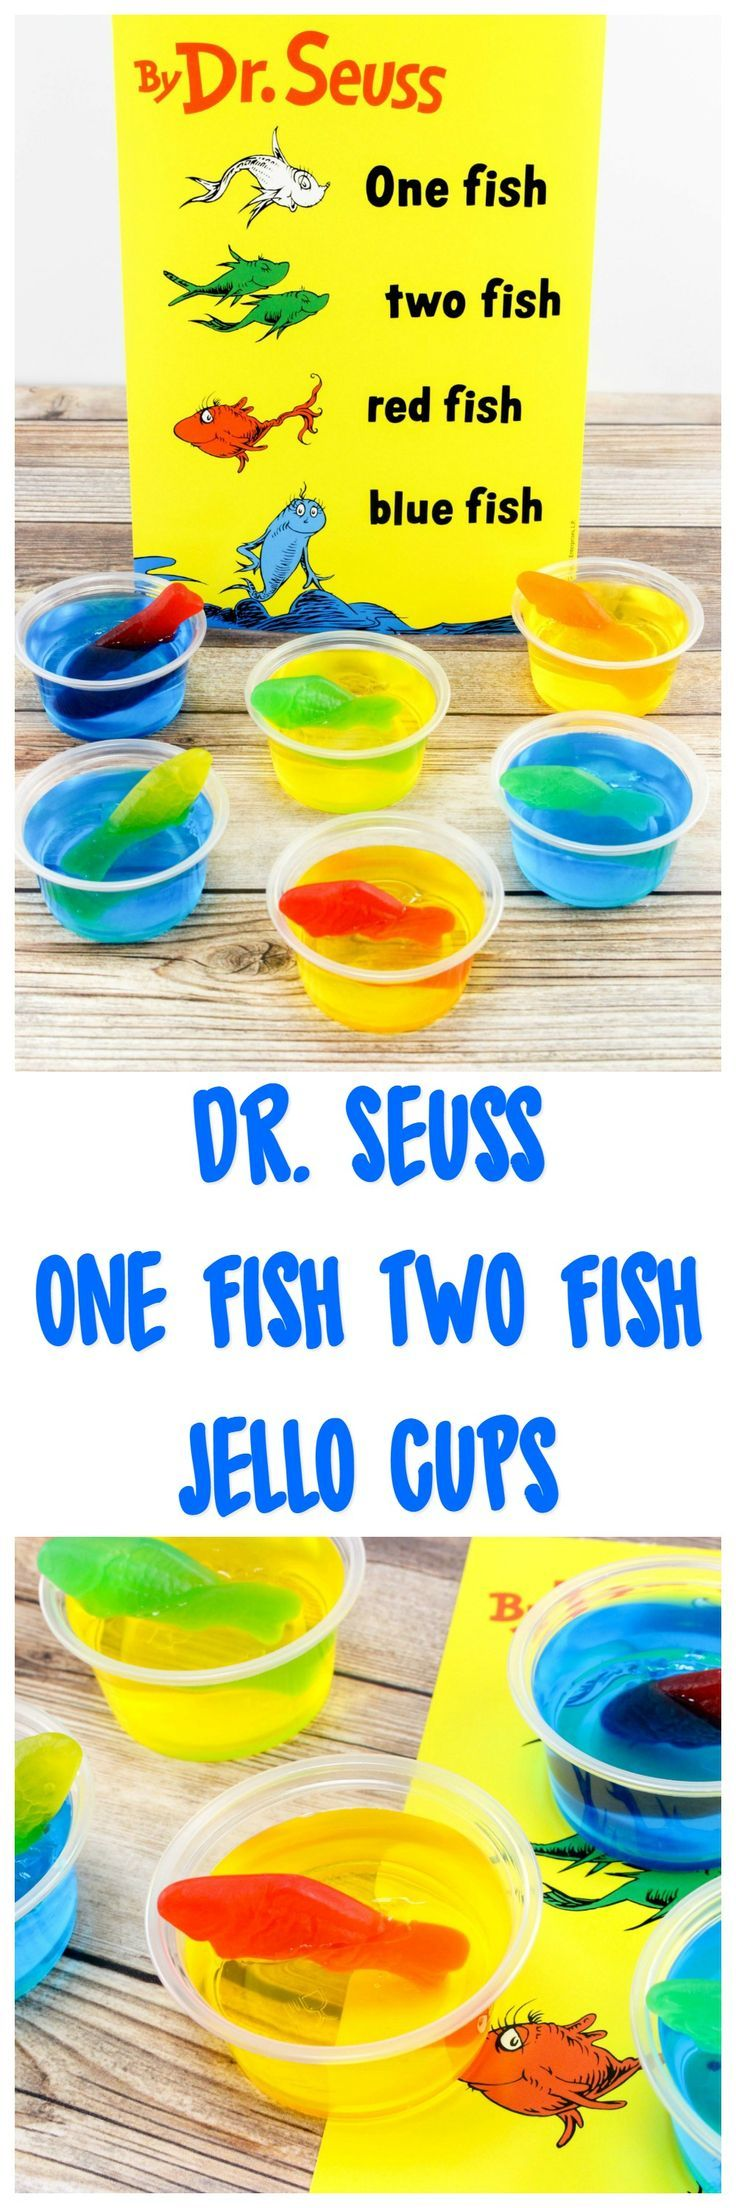 best 25 two fish ideas on pinterest one fish one fish two fish